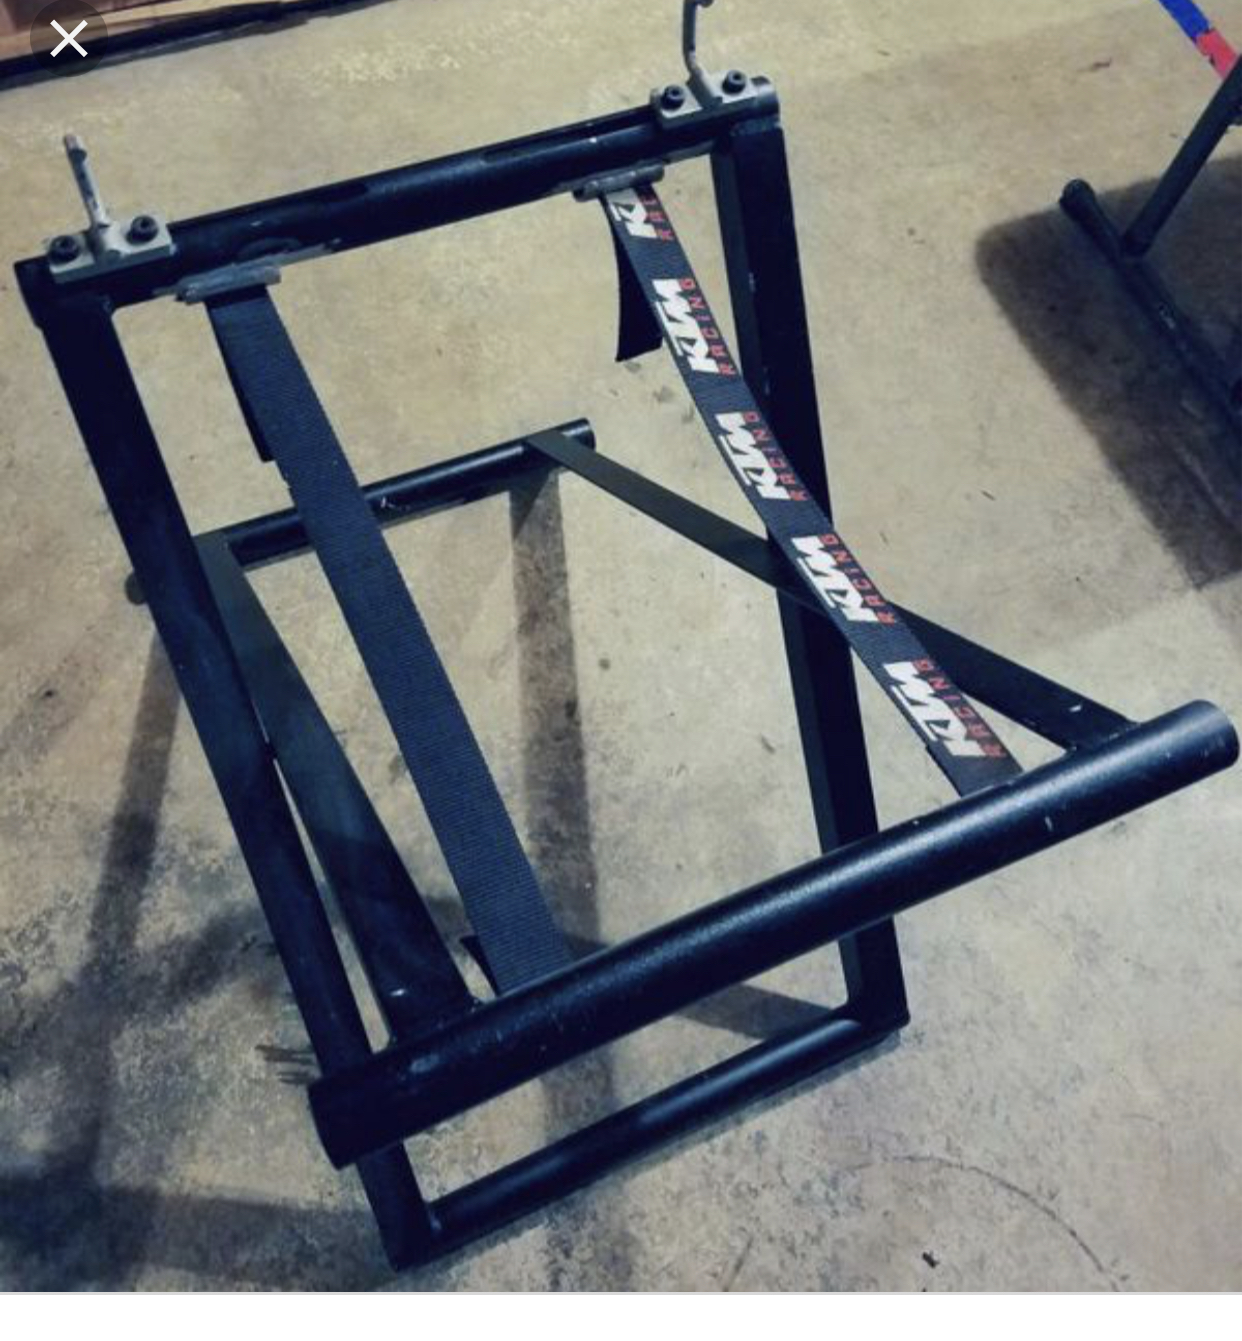 Anyone have the ktm atv stand they would be willing to part with-5c65eb59-7b97-4900-9ec8-6b156a5e5c42_1559759796170.jpeg